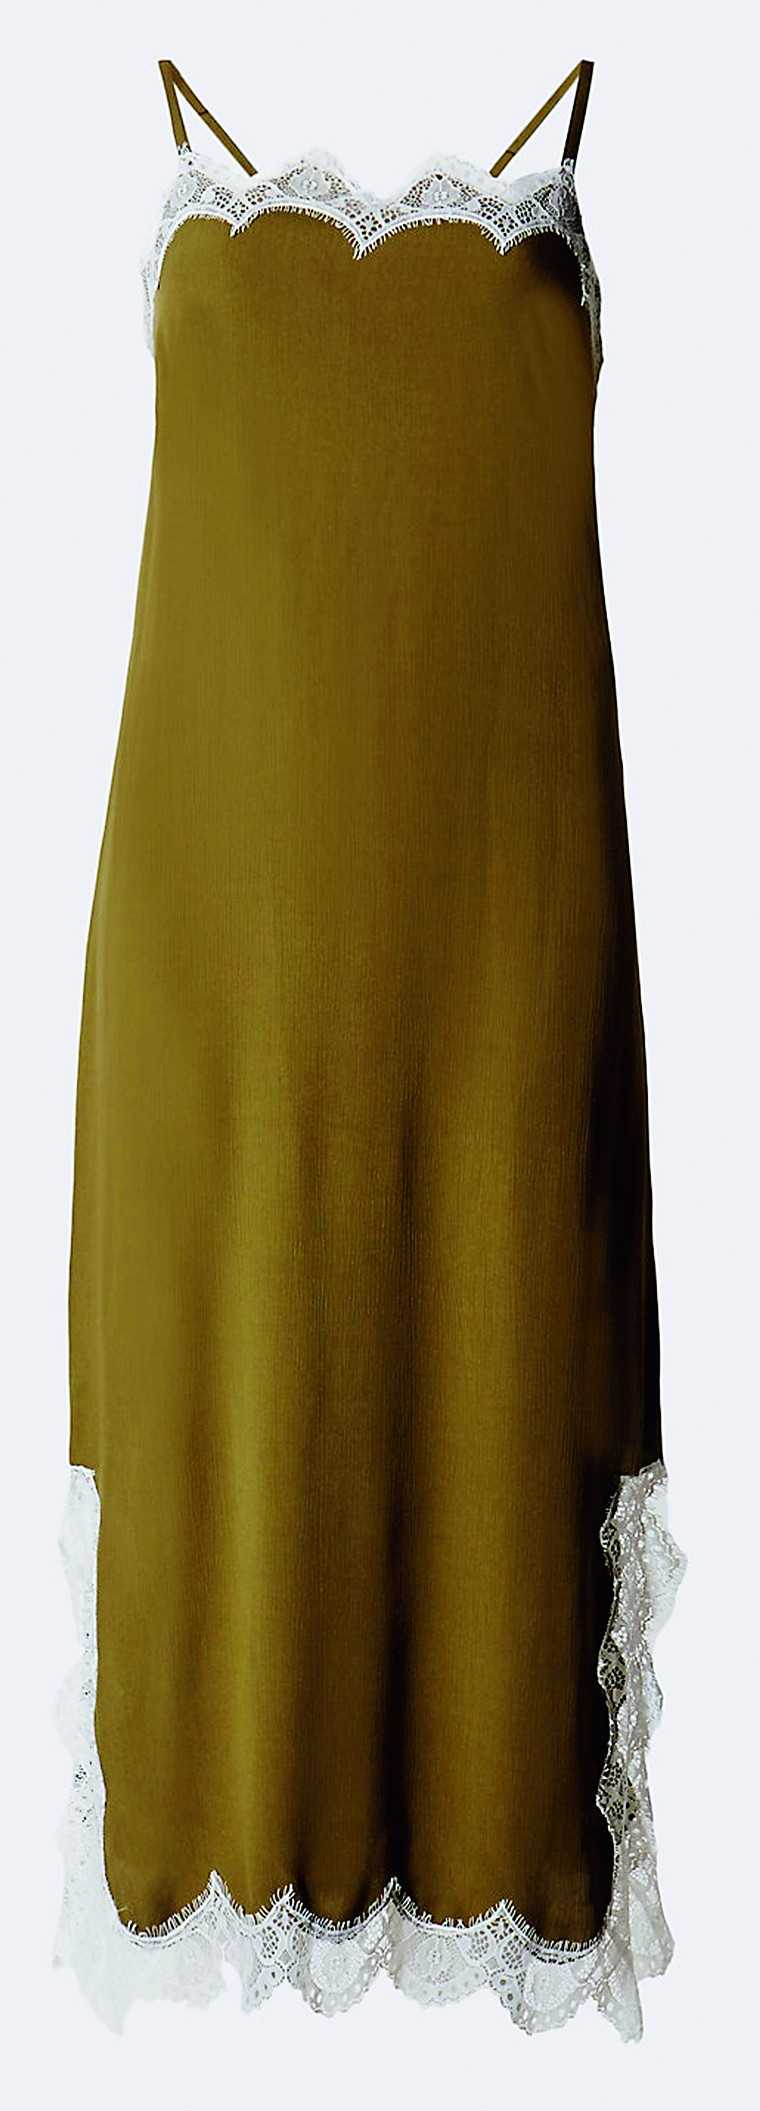 Viscose dress, Rs.3,499, Marks & Spencer